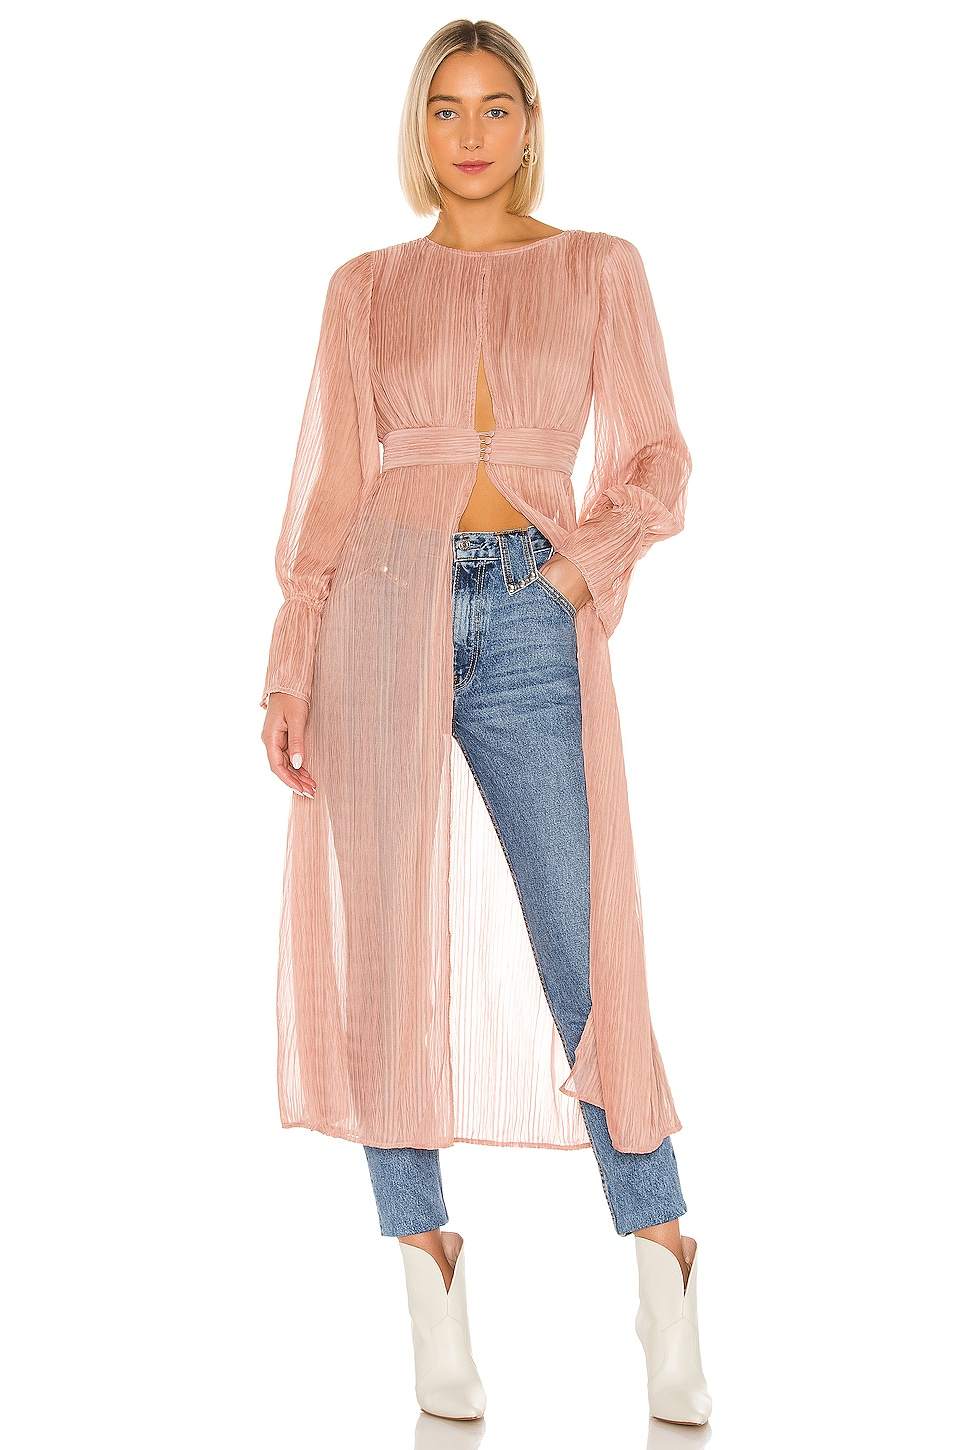 House of Harlow 1960 X REVOLVE Ananda Maxi Top in Rose